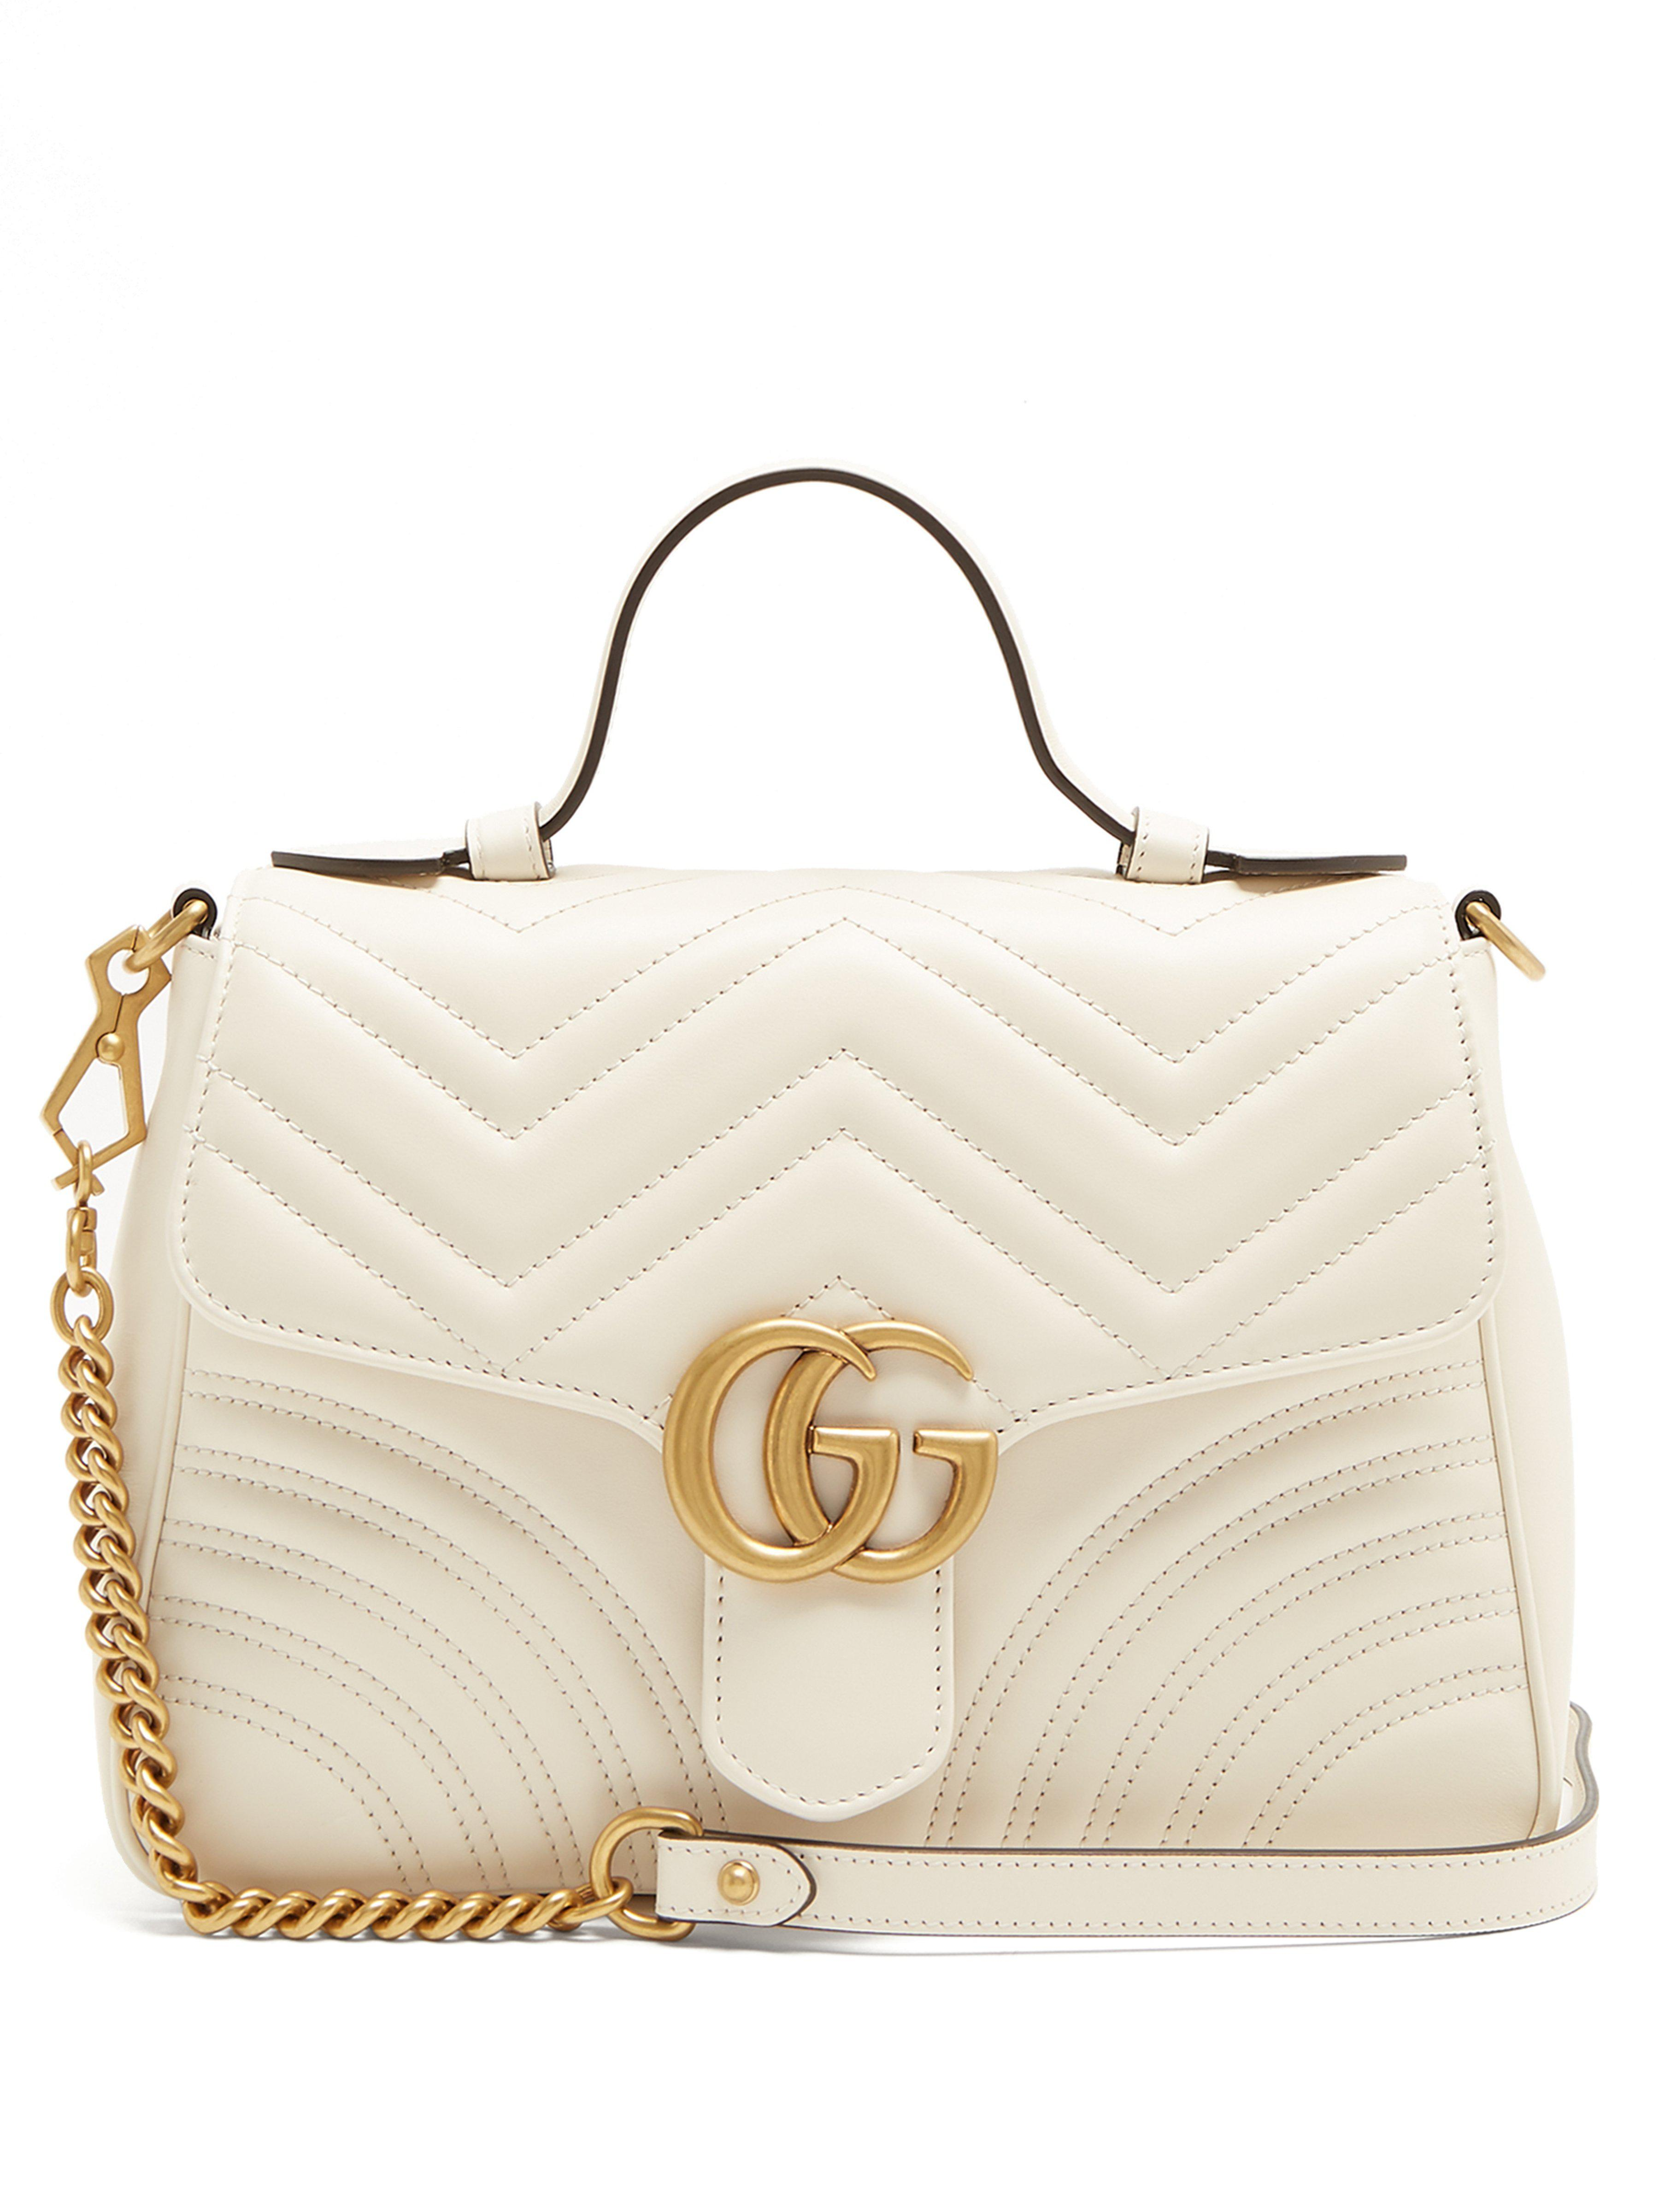 2dde24e11d6f4 Gucci Gg Marmont Small Quilted-leather Shoulder-bag in White - Lyst